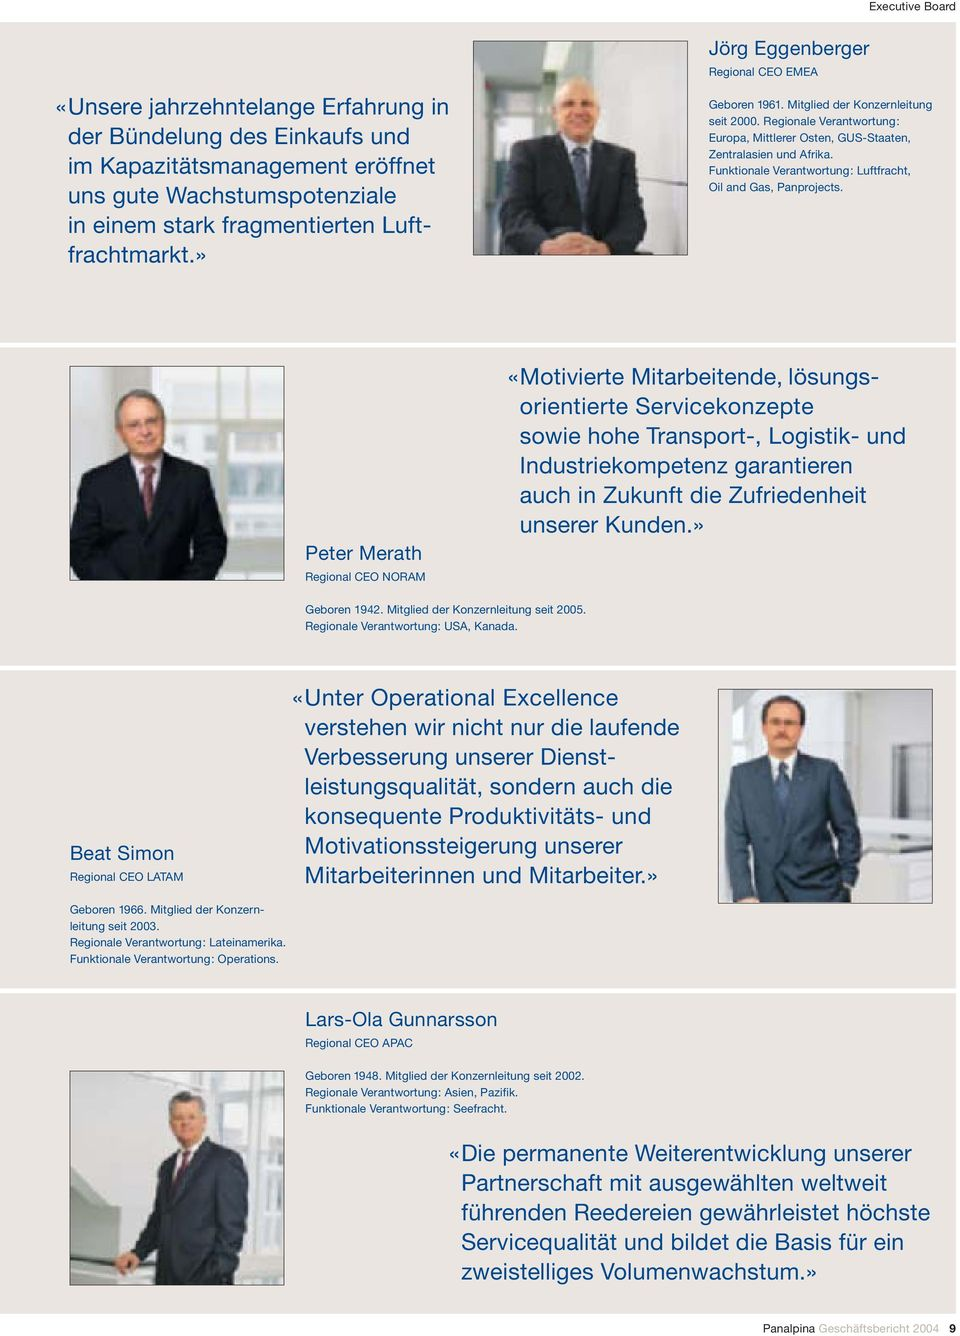 Funktionale Verantwortung: Luftfracht, Oil and Gas, Panprojects.